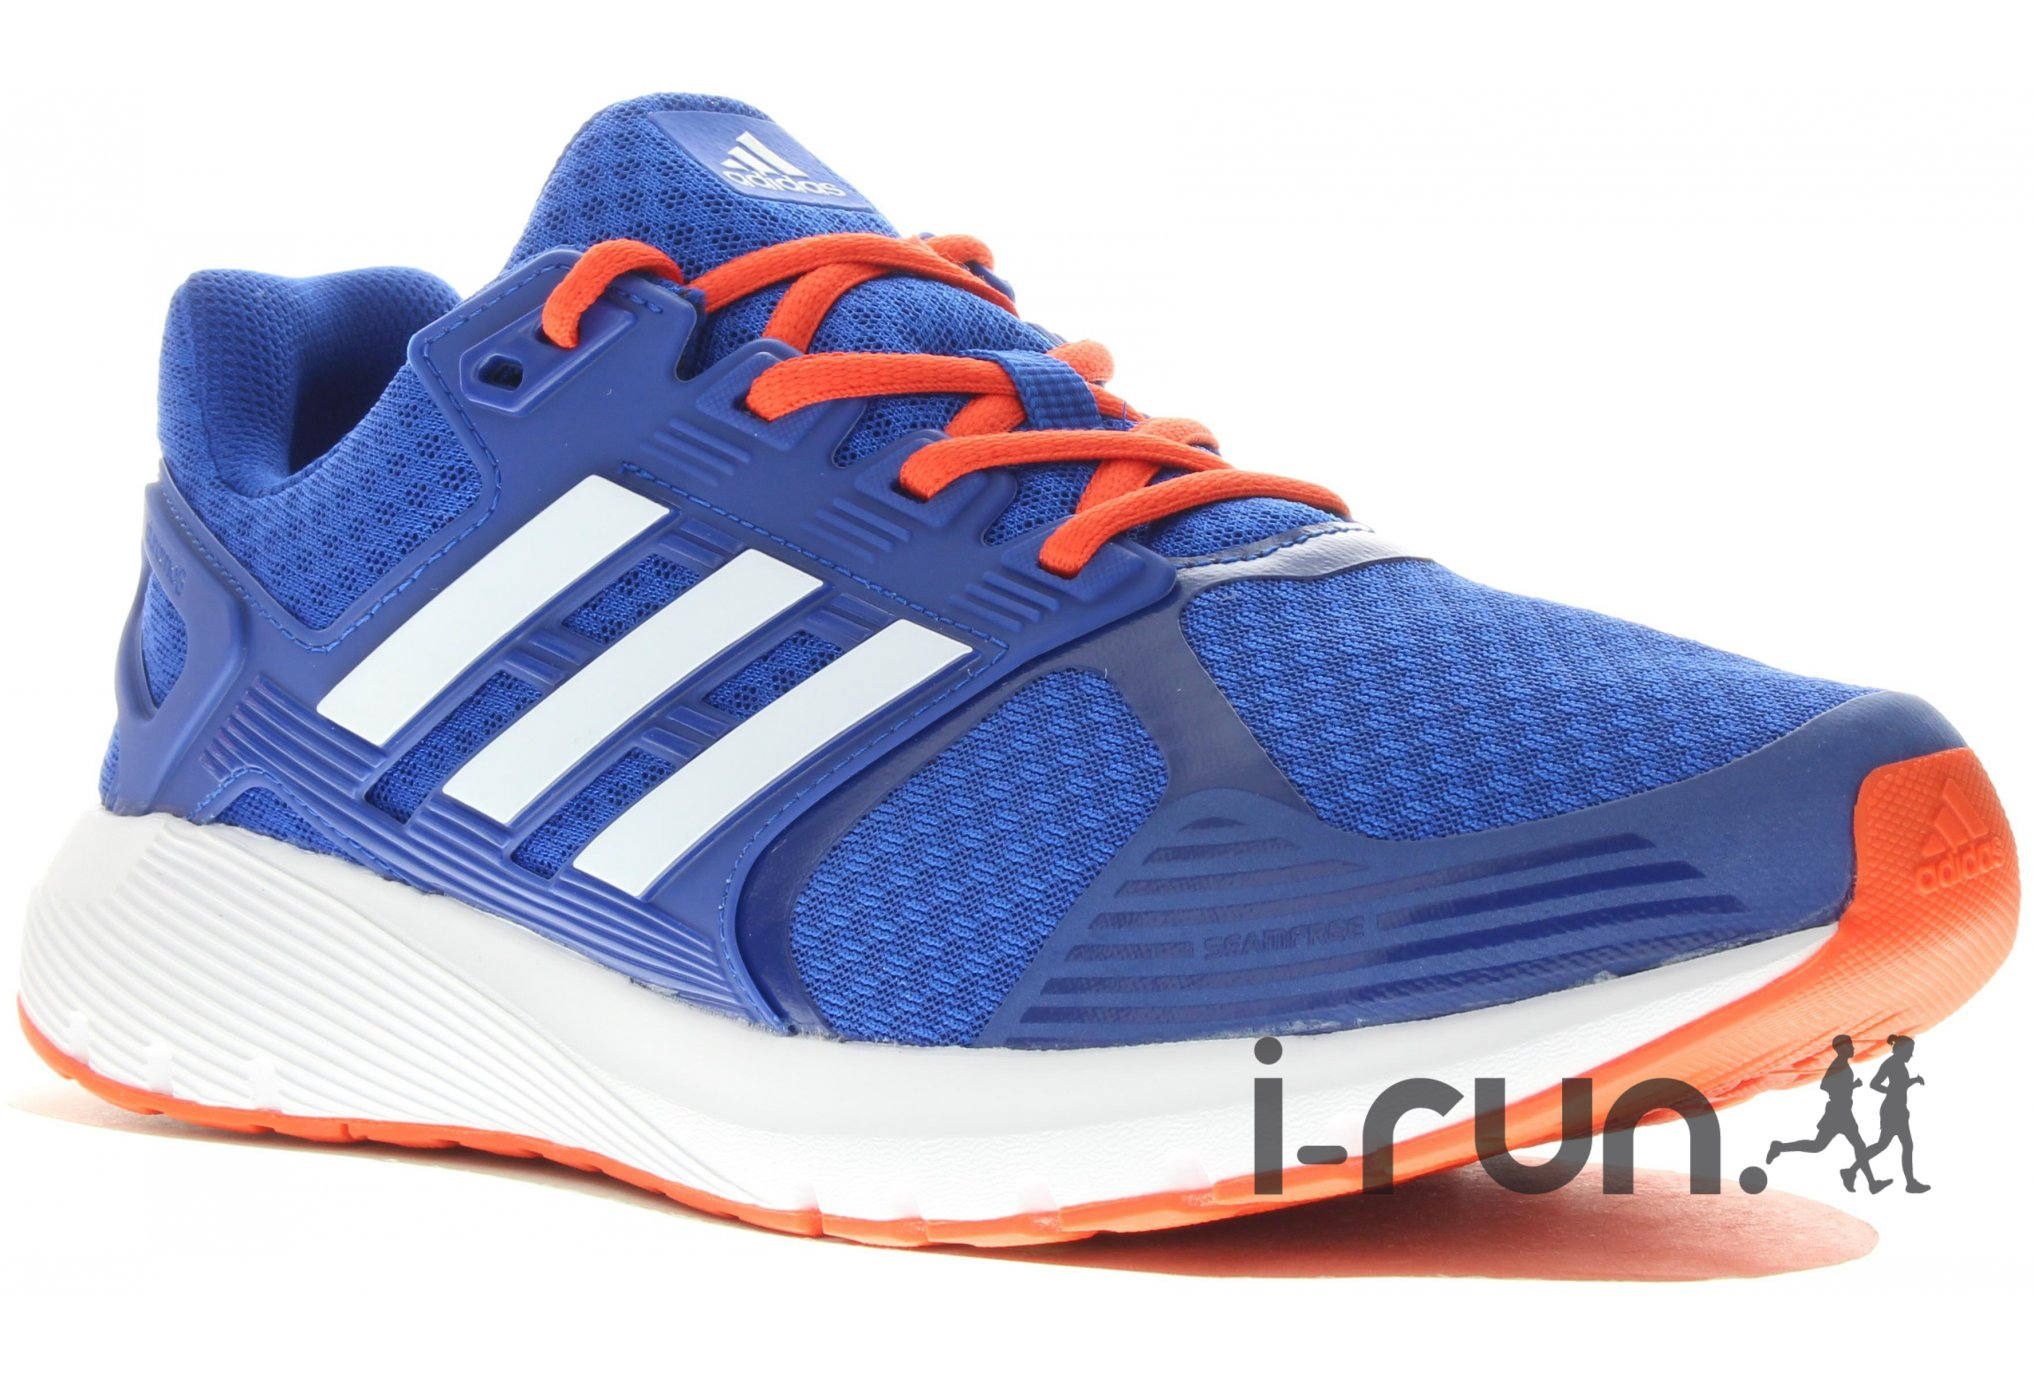 Adidas Duramo 8 m chaussures homme